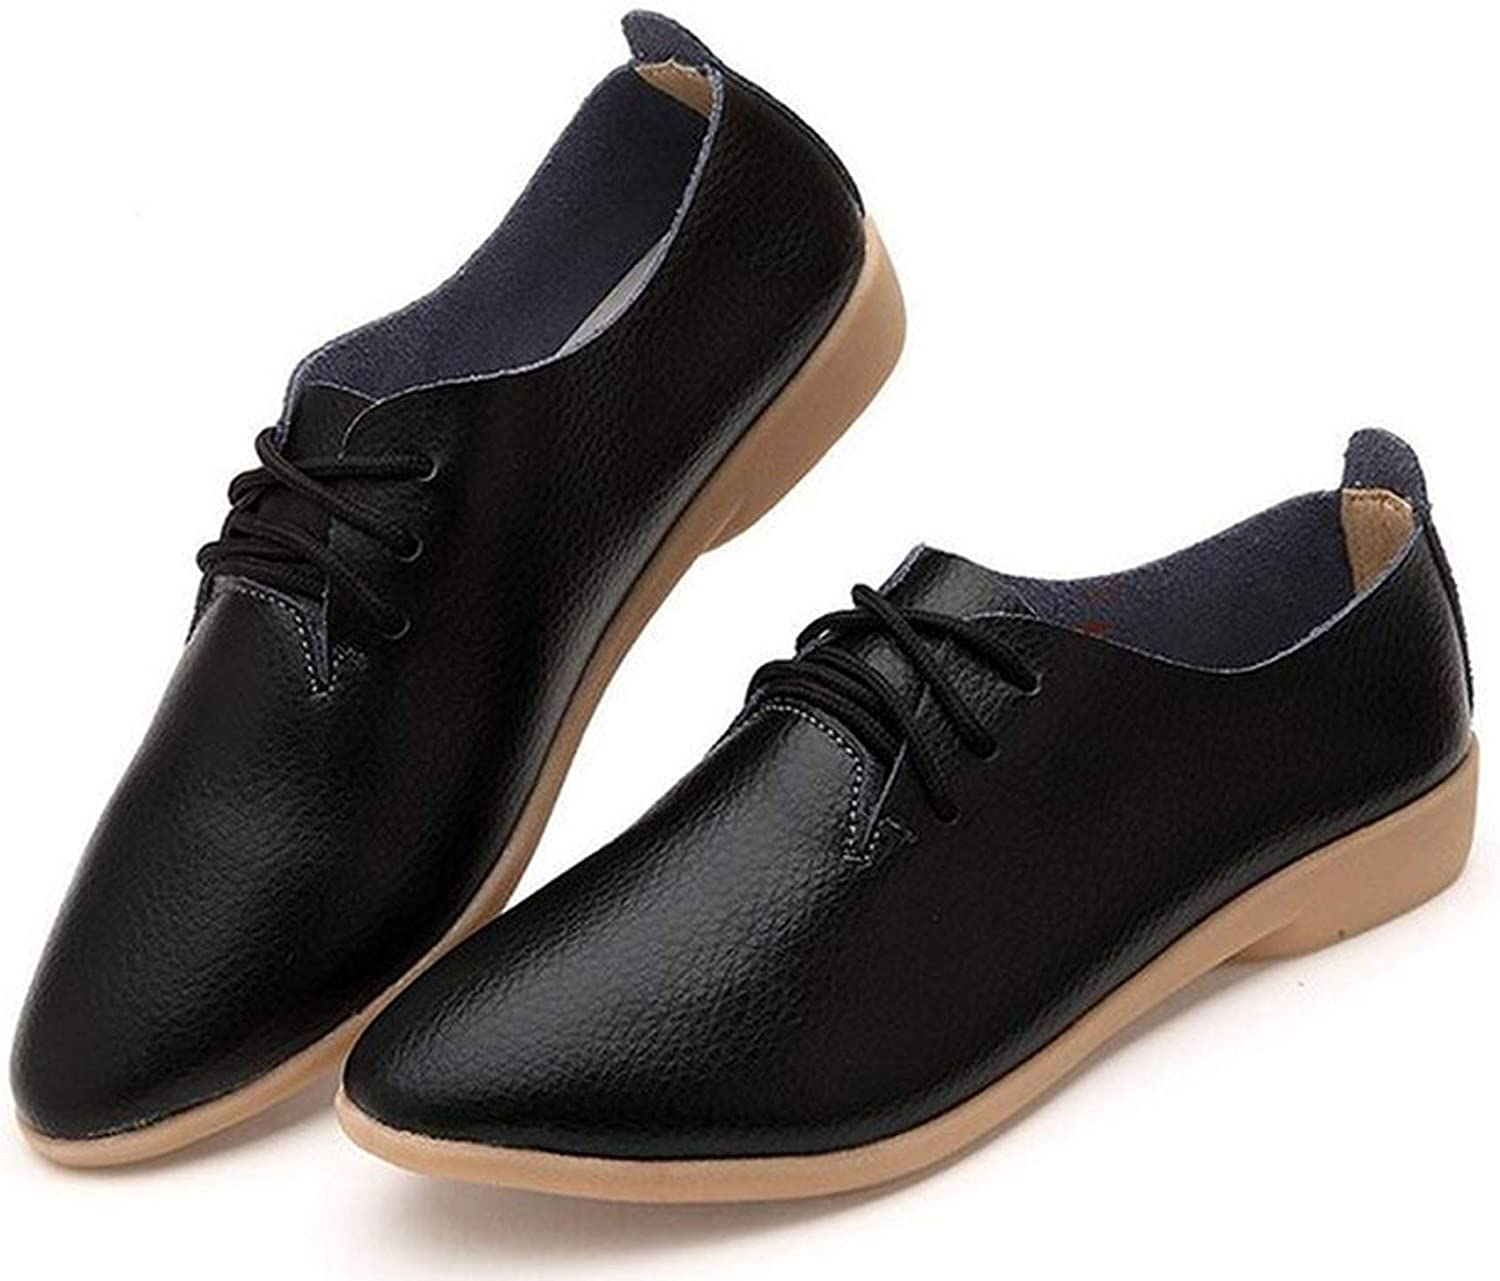 Baixa Genuine Leather Oxford shoes for Women Round Toe Lace-Up Casual shoes Spring and Autumn Flat Loafers shoes